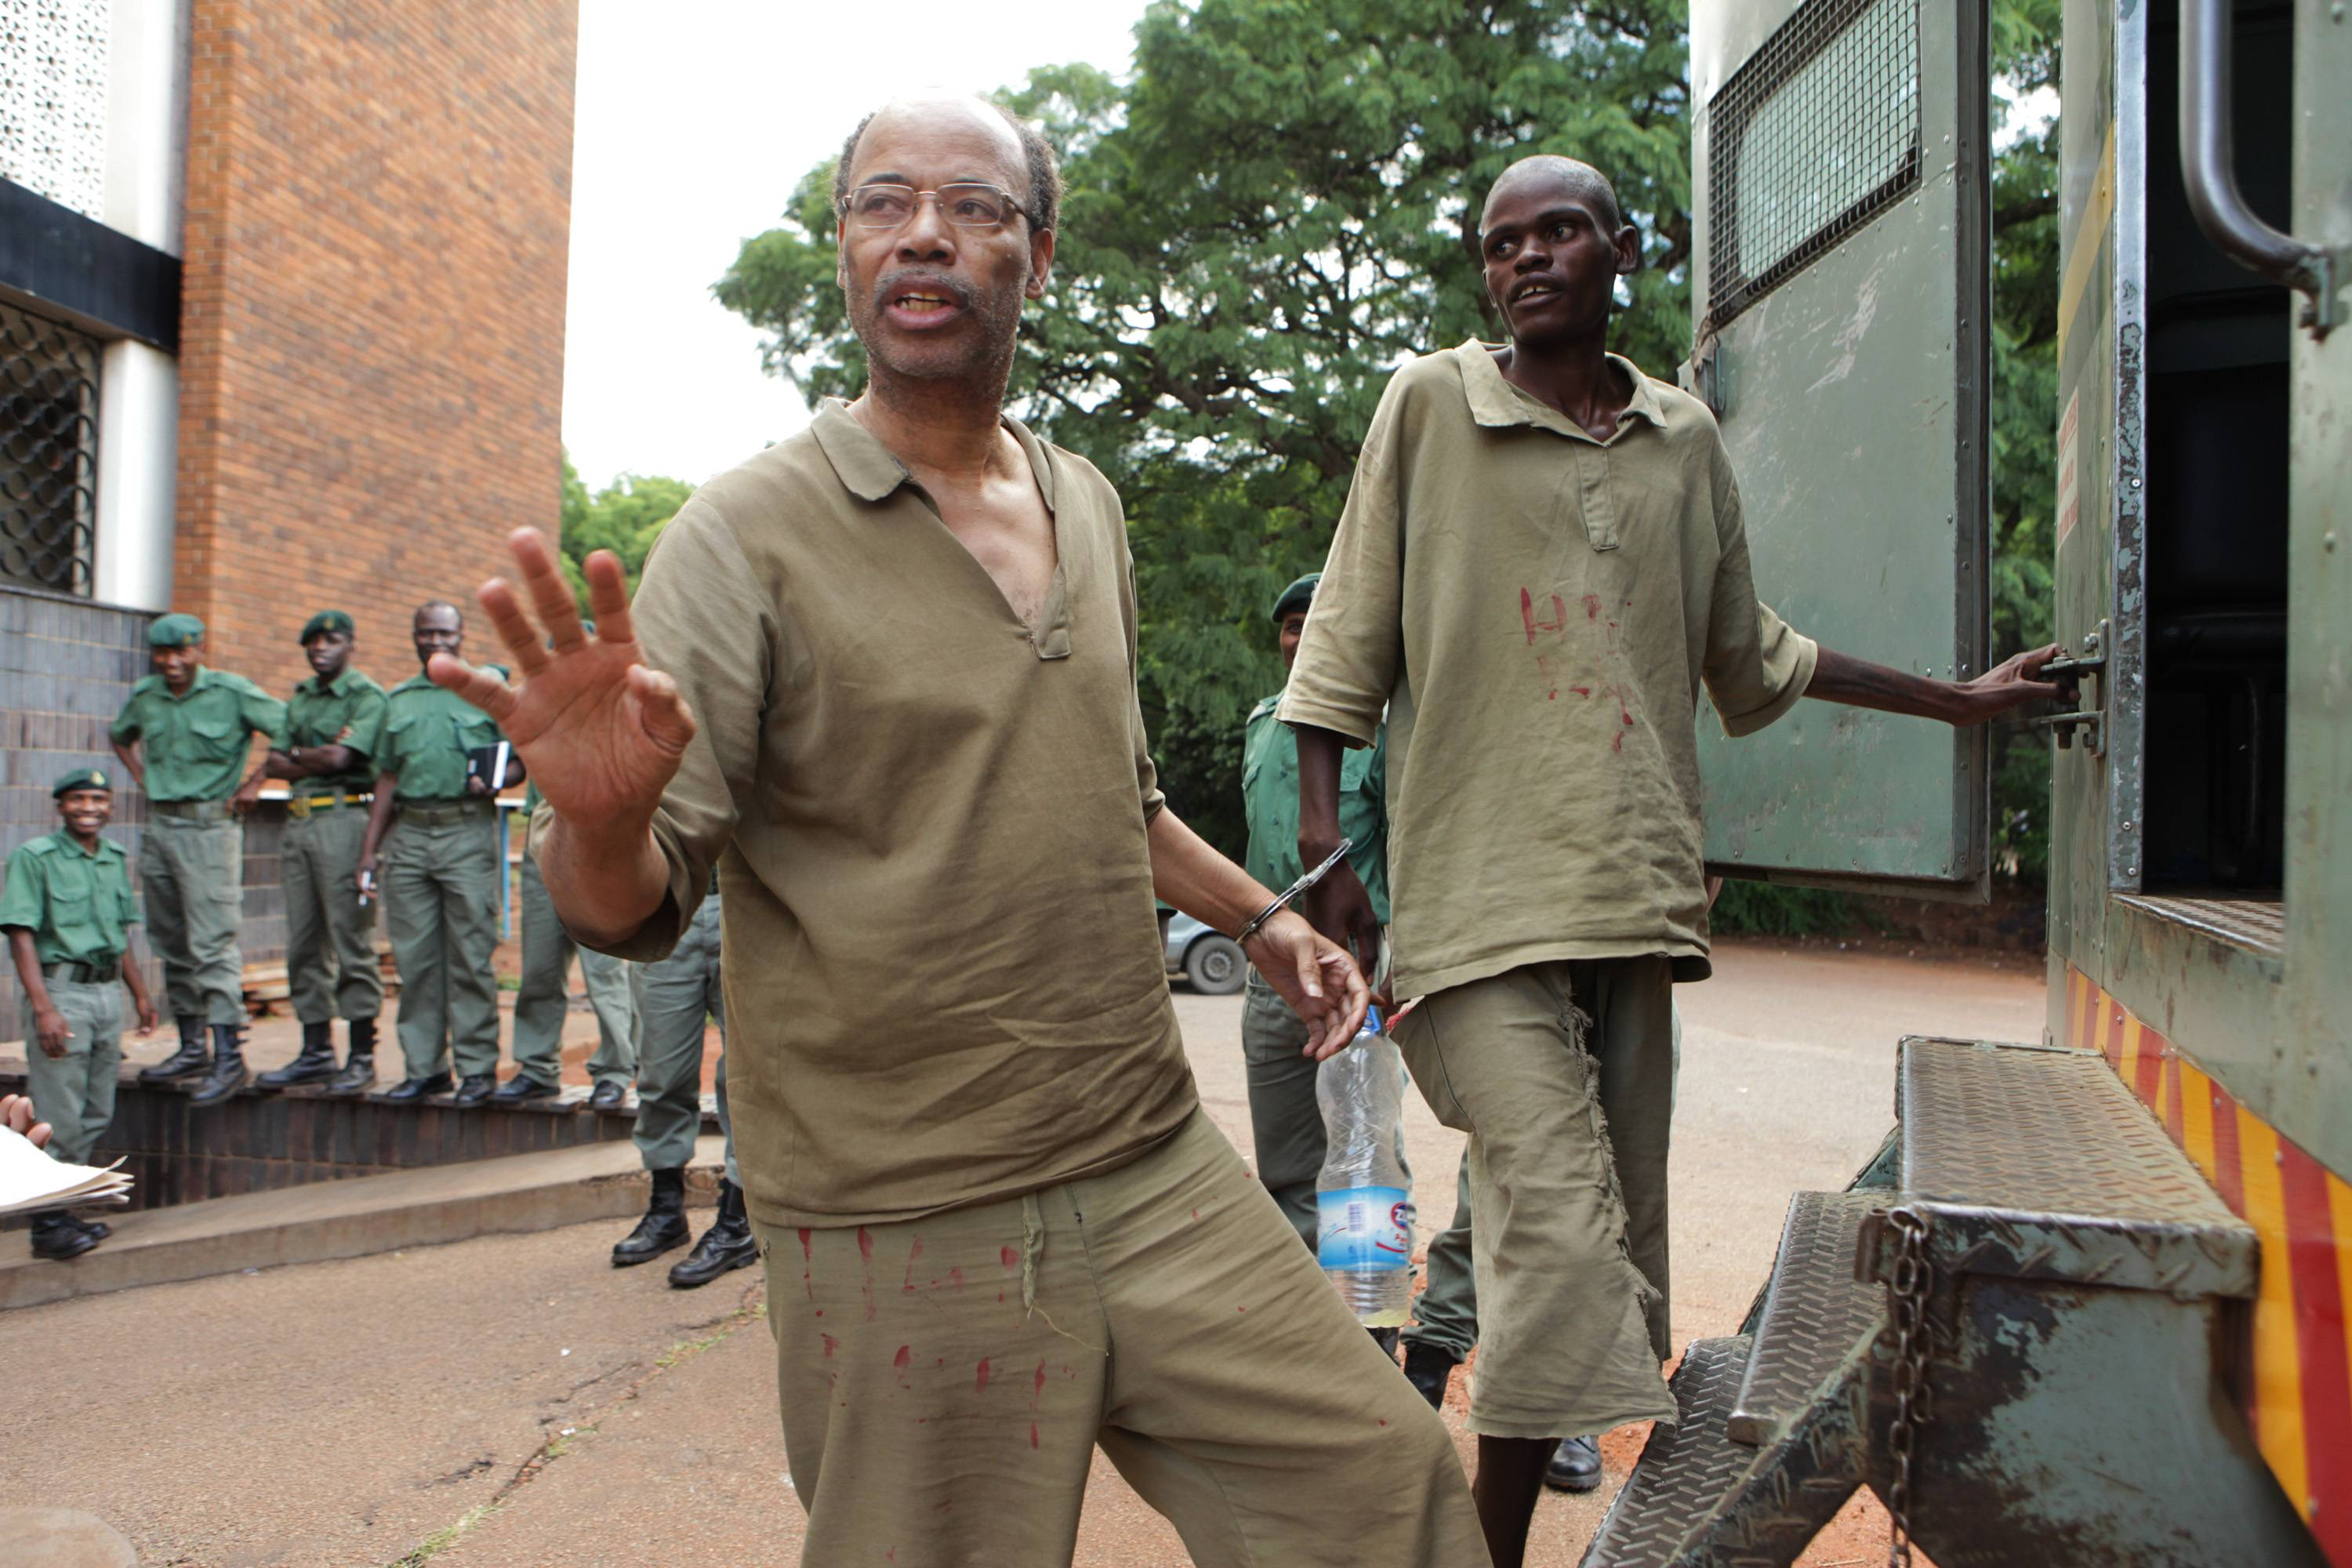 Former Congressman Mel Reynolds, center left, prepares to enter a prison truck while handcuffed after a court appearance Feb. 20 in Harare, Zimbabwe. Since deported, Reynolds now says he's in hiding.